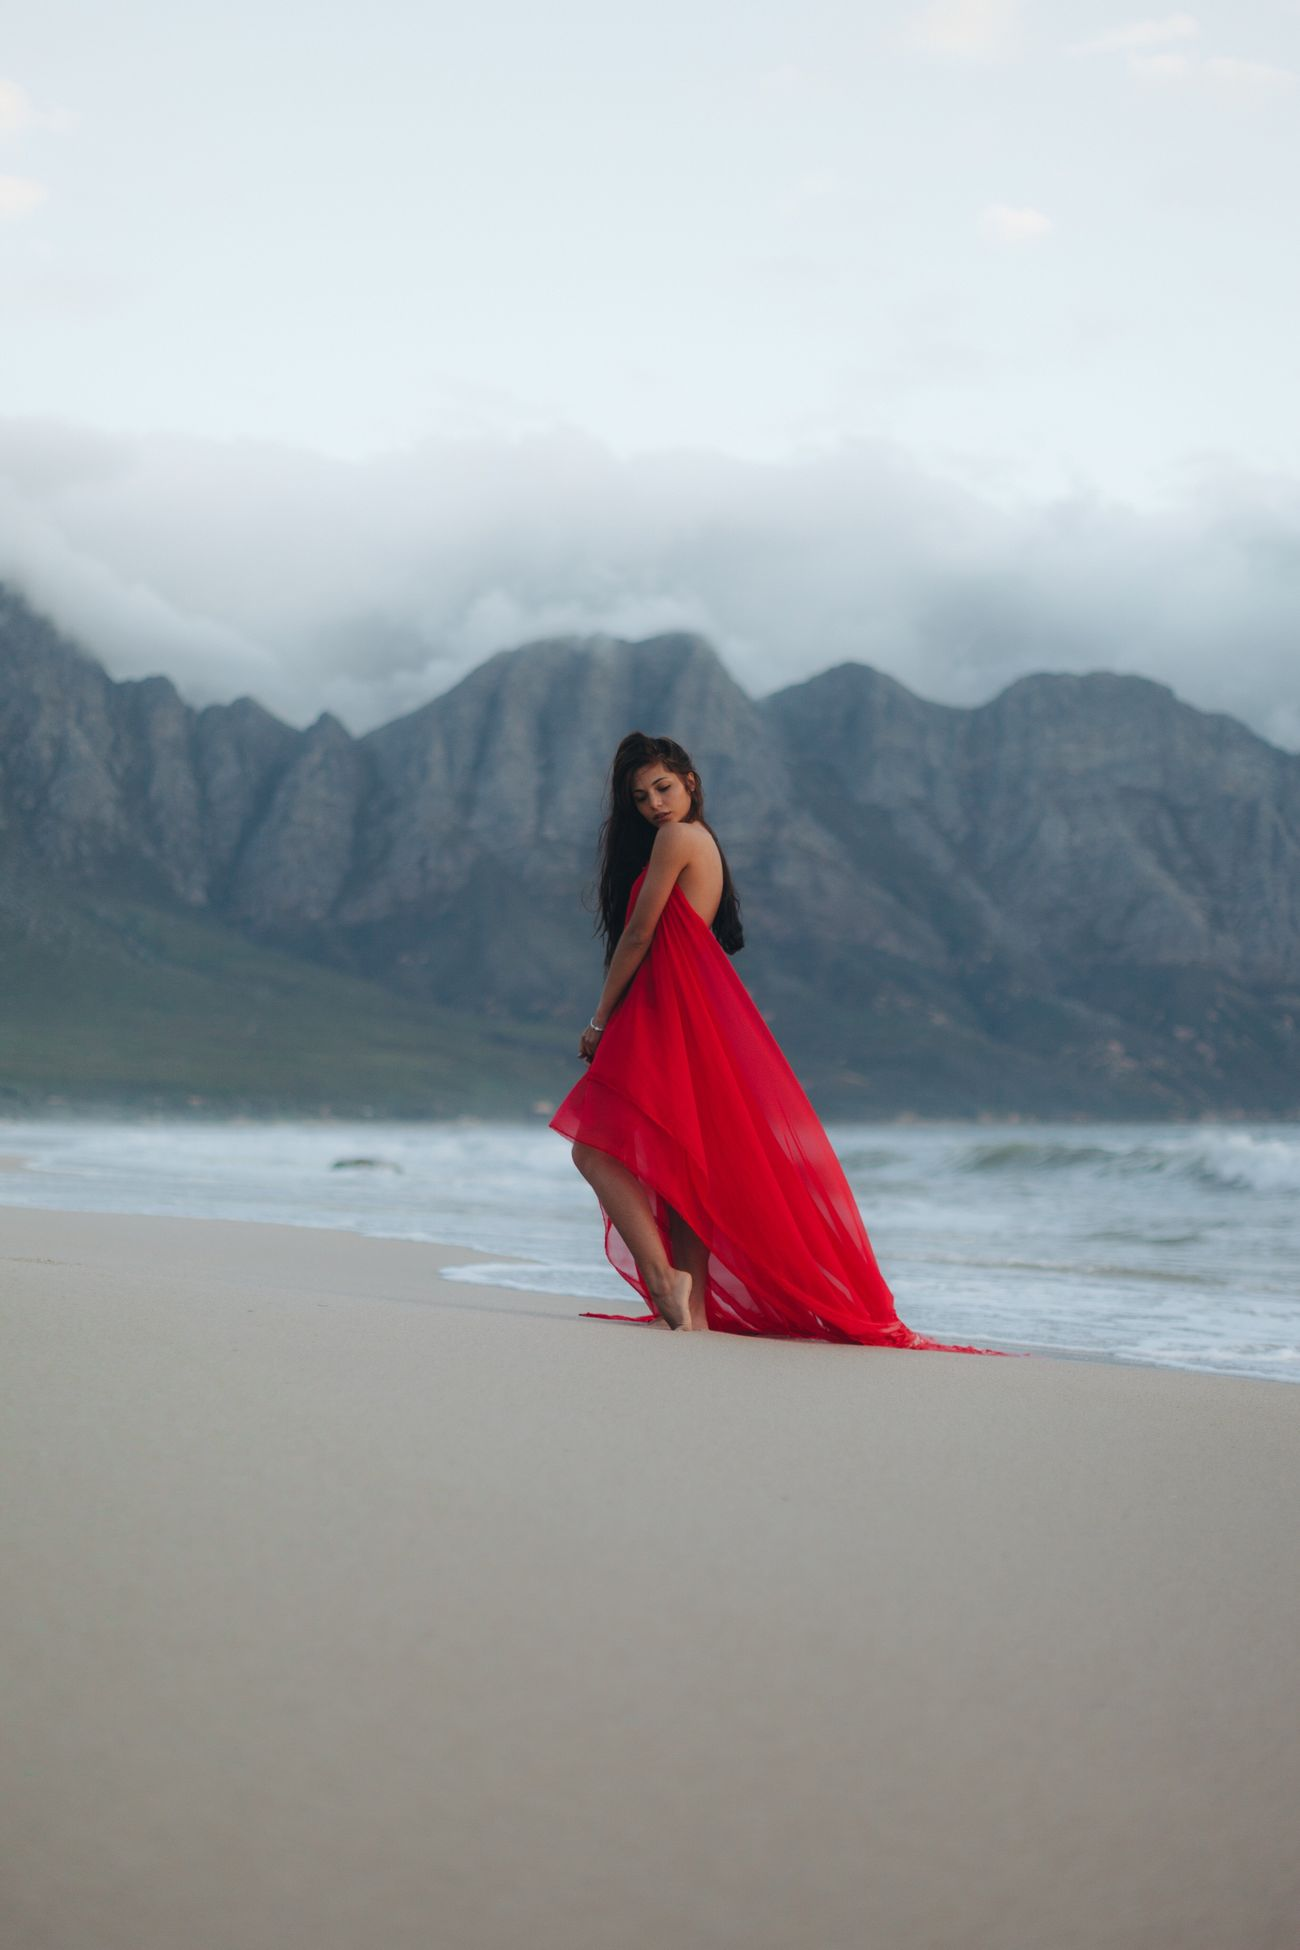 Beach South Africa Cape Town One Young Woman Only Beauty In Nature Portrait Mountain Landscape Women Standing Outdoors One Person Red Full Length Young Adult Standing Mountain Range Sky Nature Tranquility Scenics Day Beauty In Nature Women Around The World